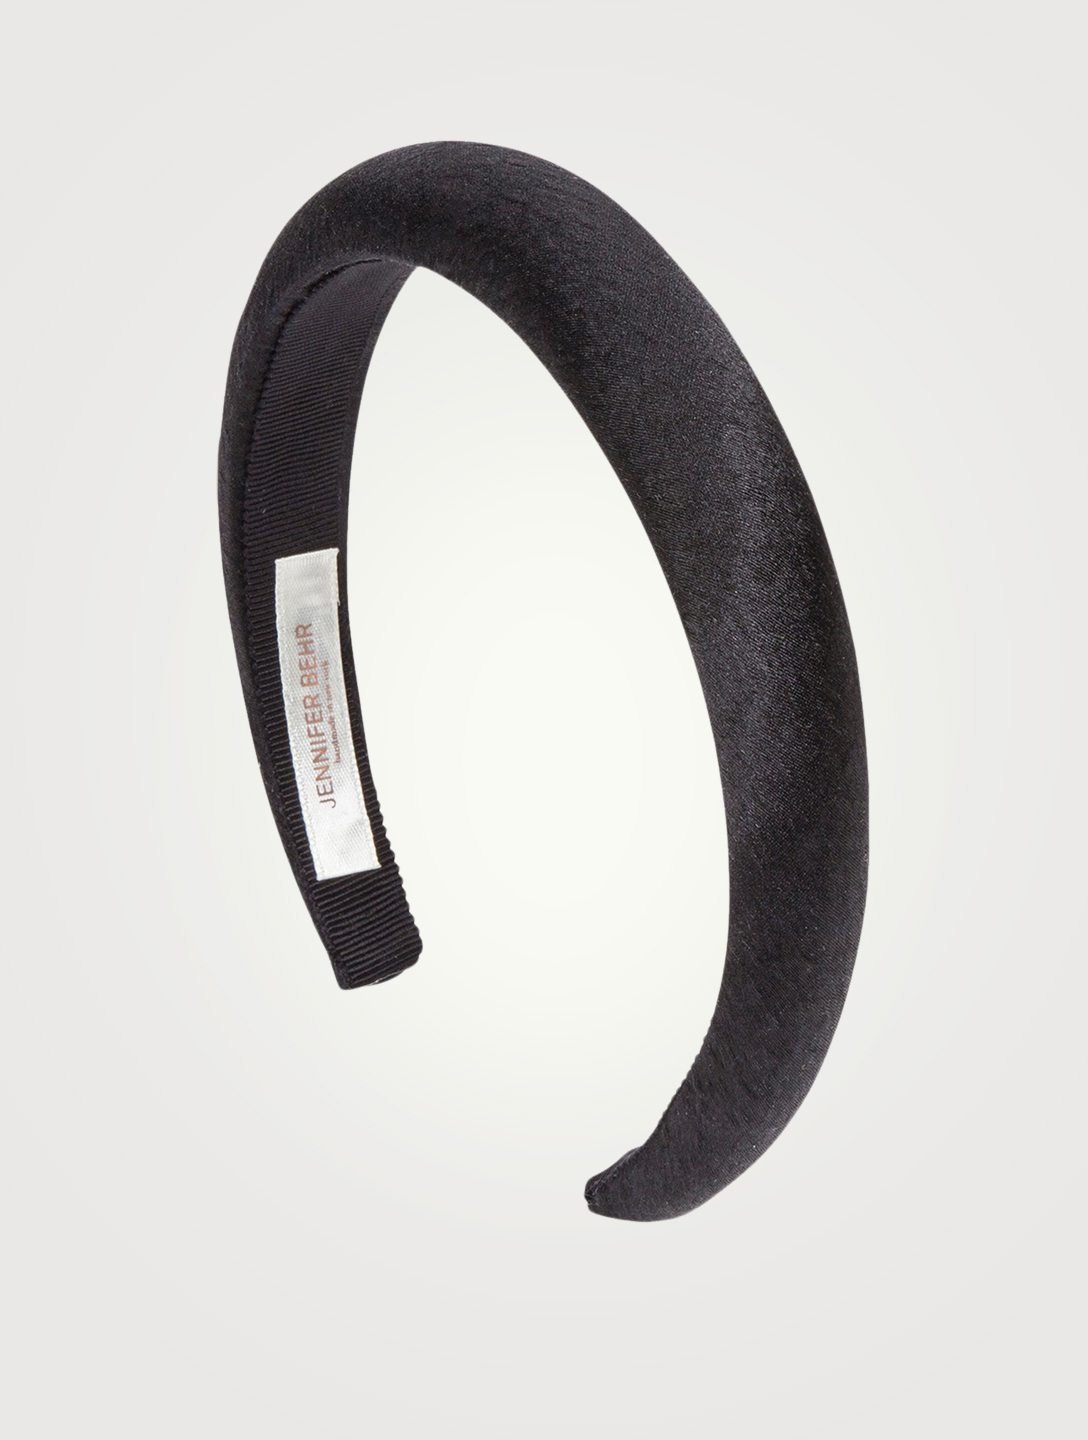 JENNIFER BEHR Tori Hammered Silk Satin Headband Women's Black